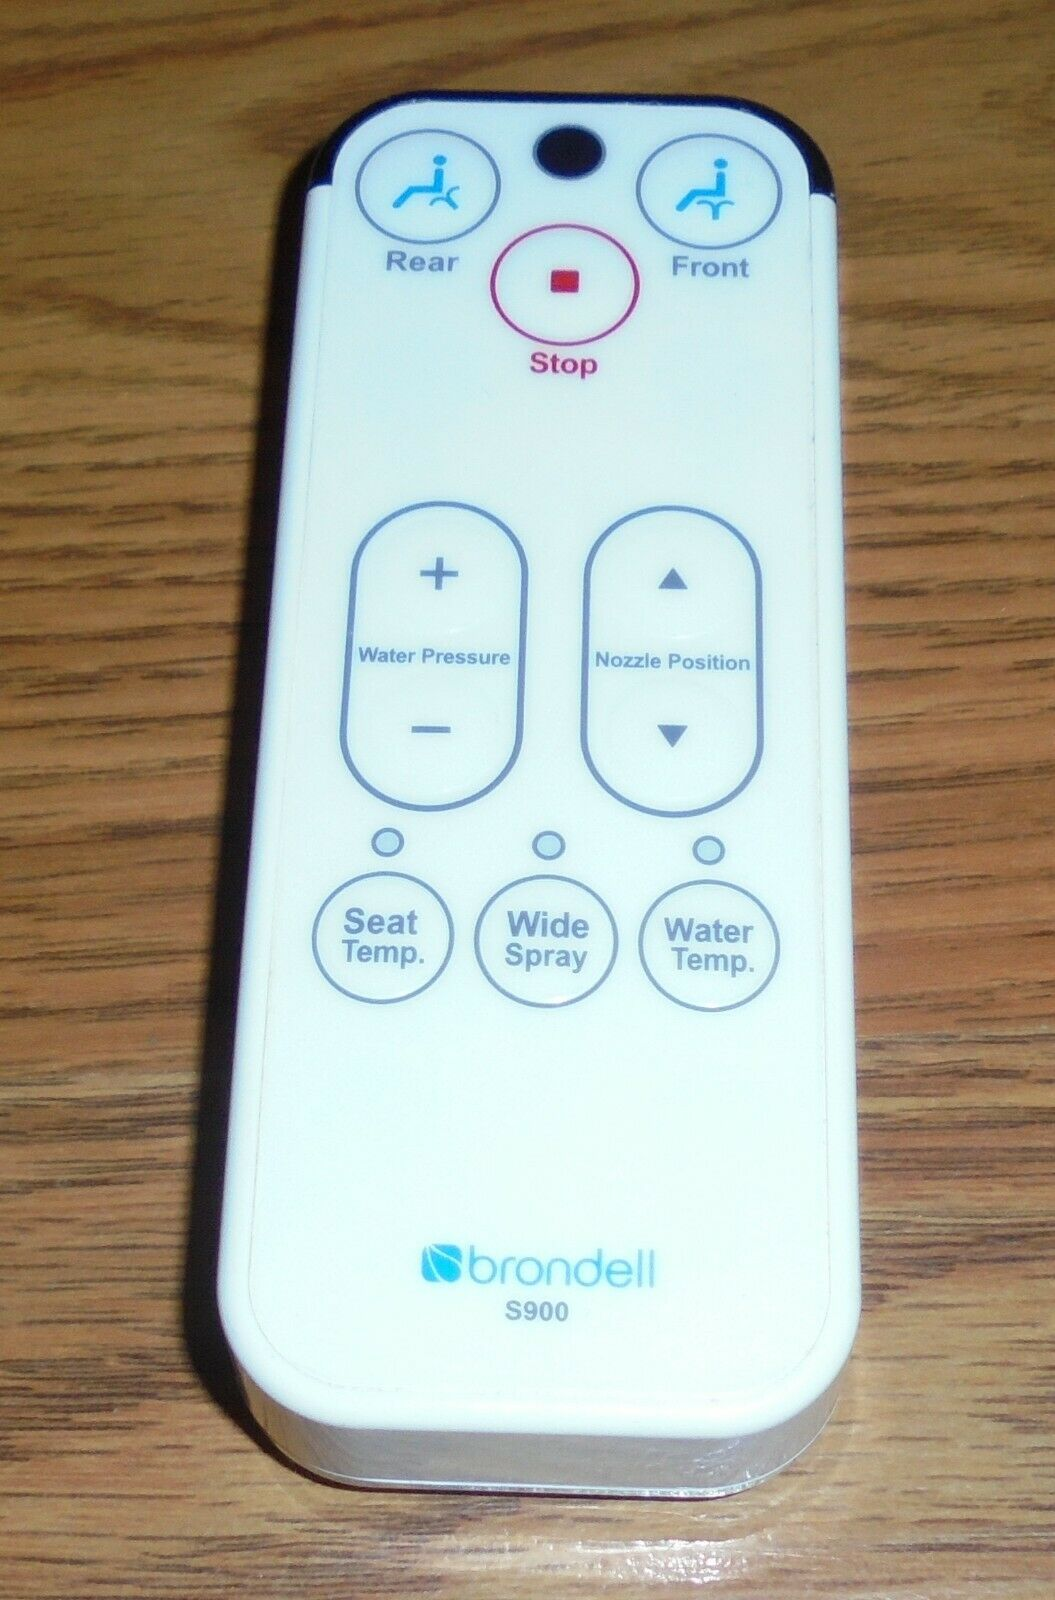 Brondell Swash S900 Electronic Bidet Toilet Seat Remote Control Tested